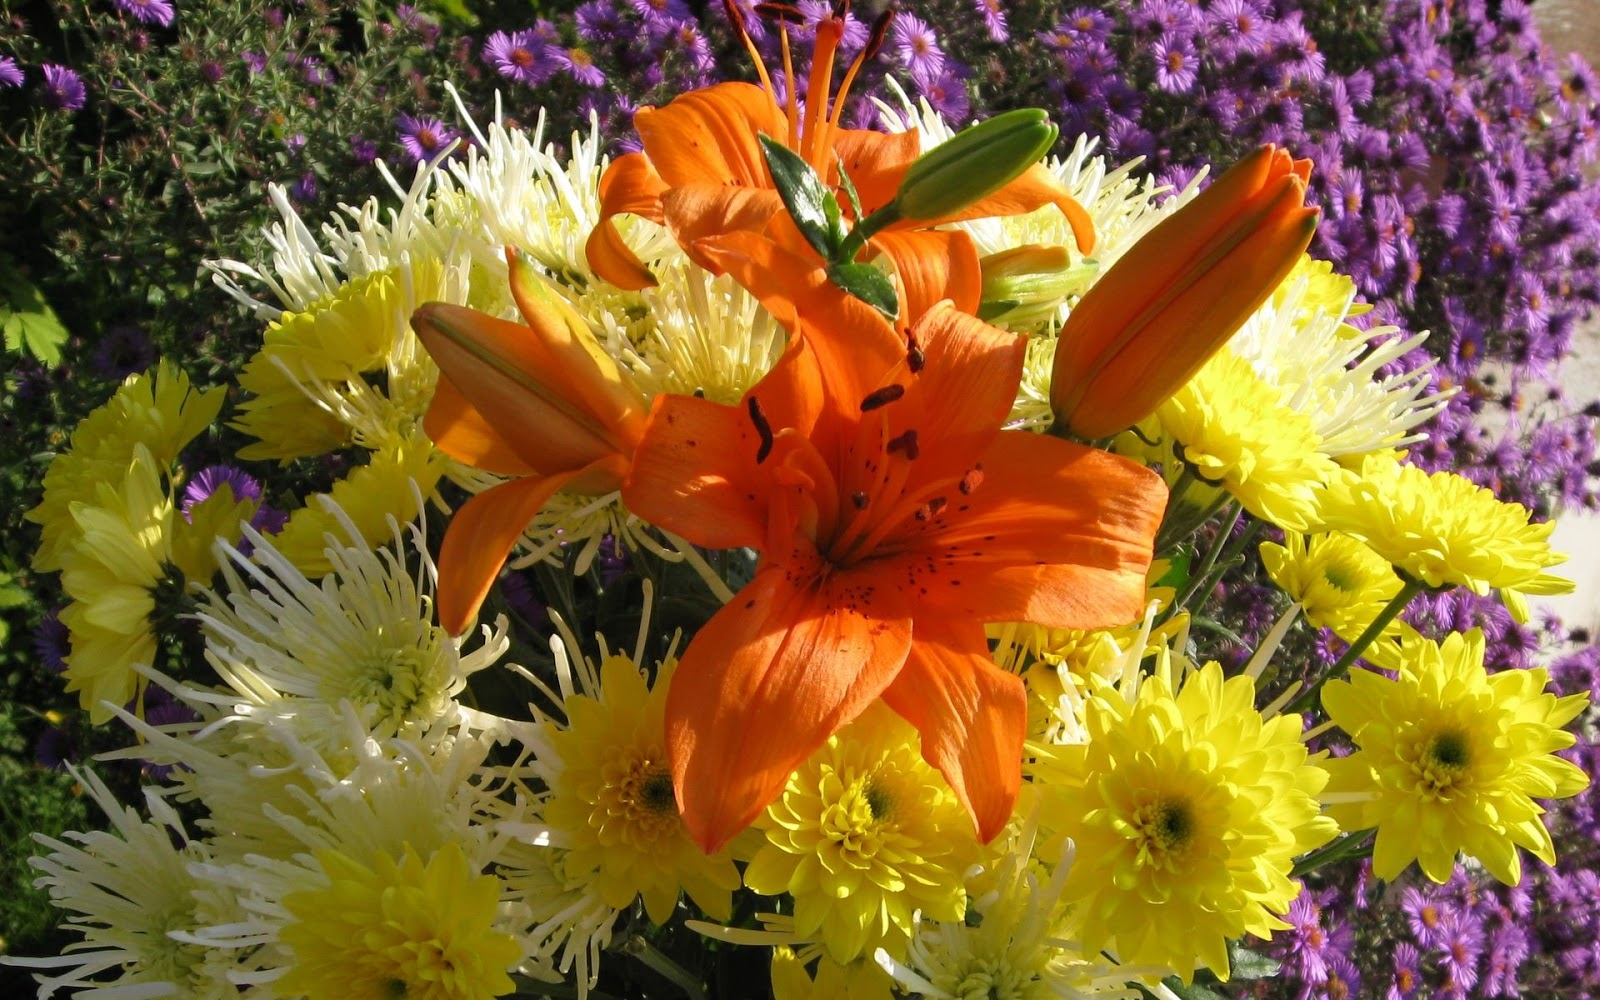 Hd Photos Of Aster Flower Bouquets